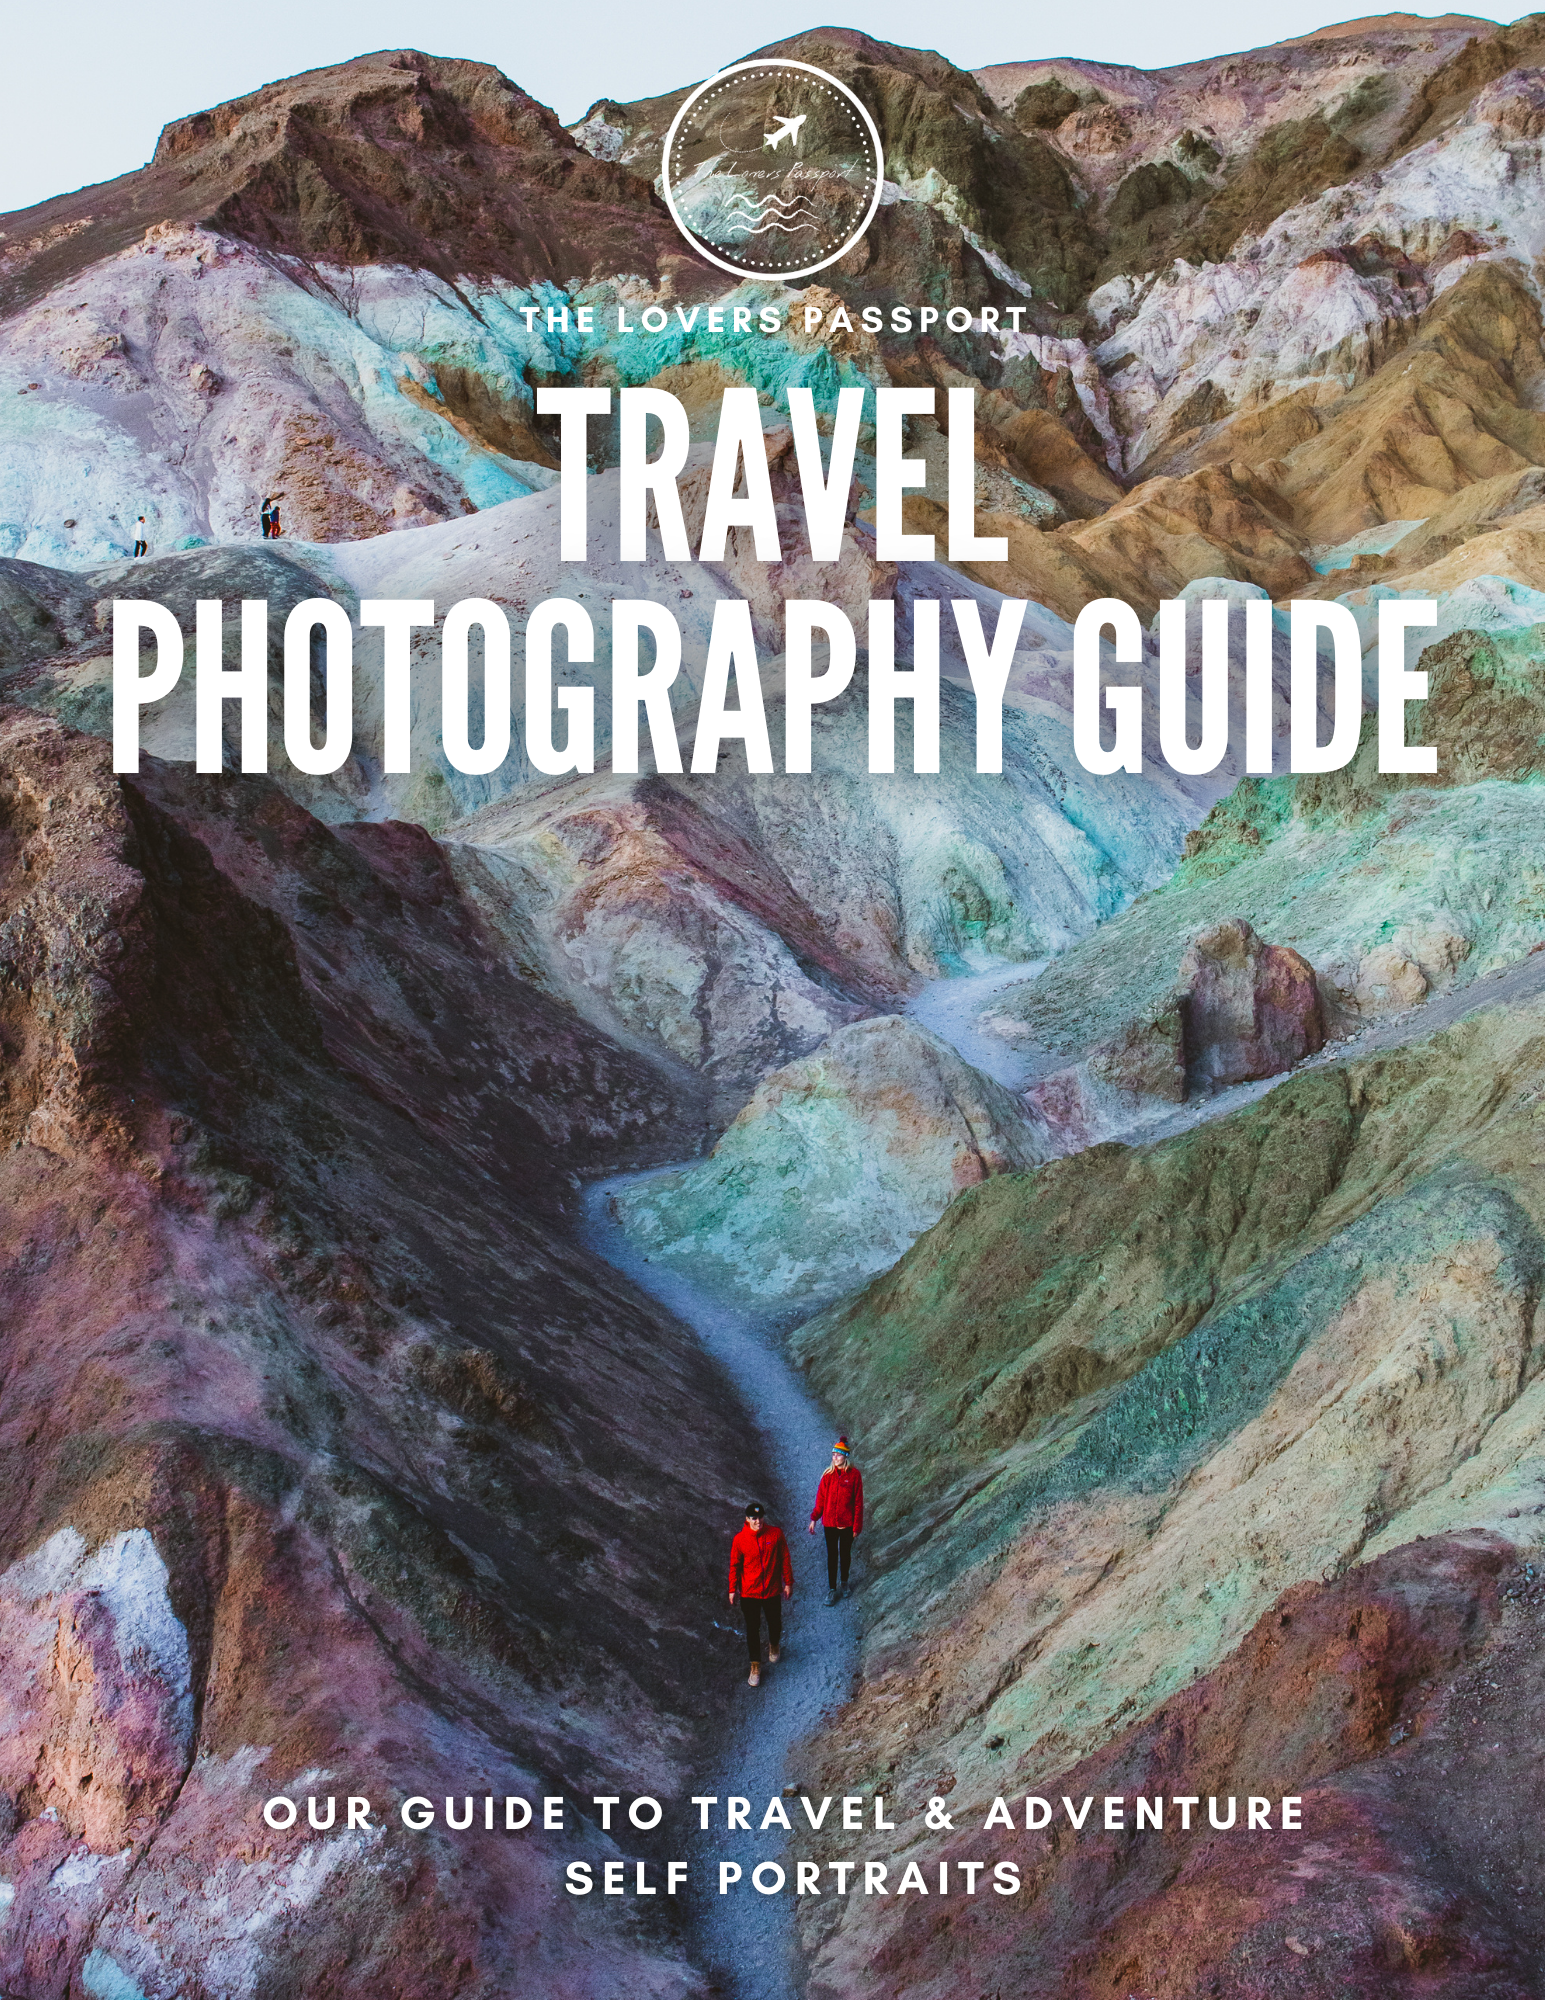 Travel Photography Guide Image